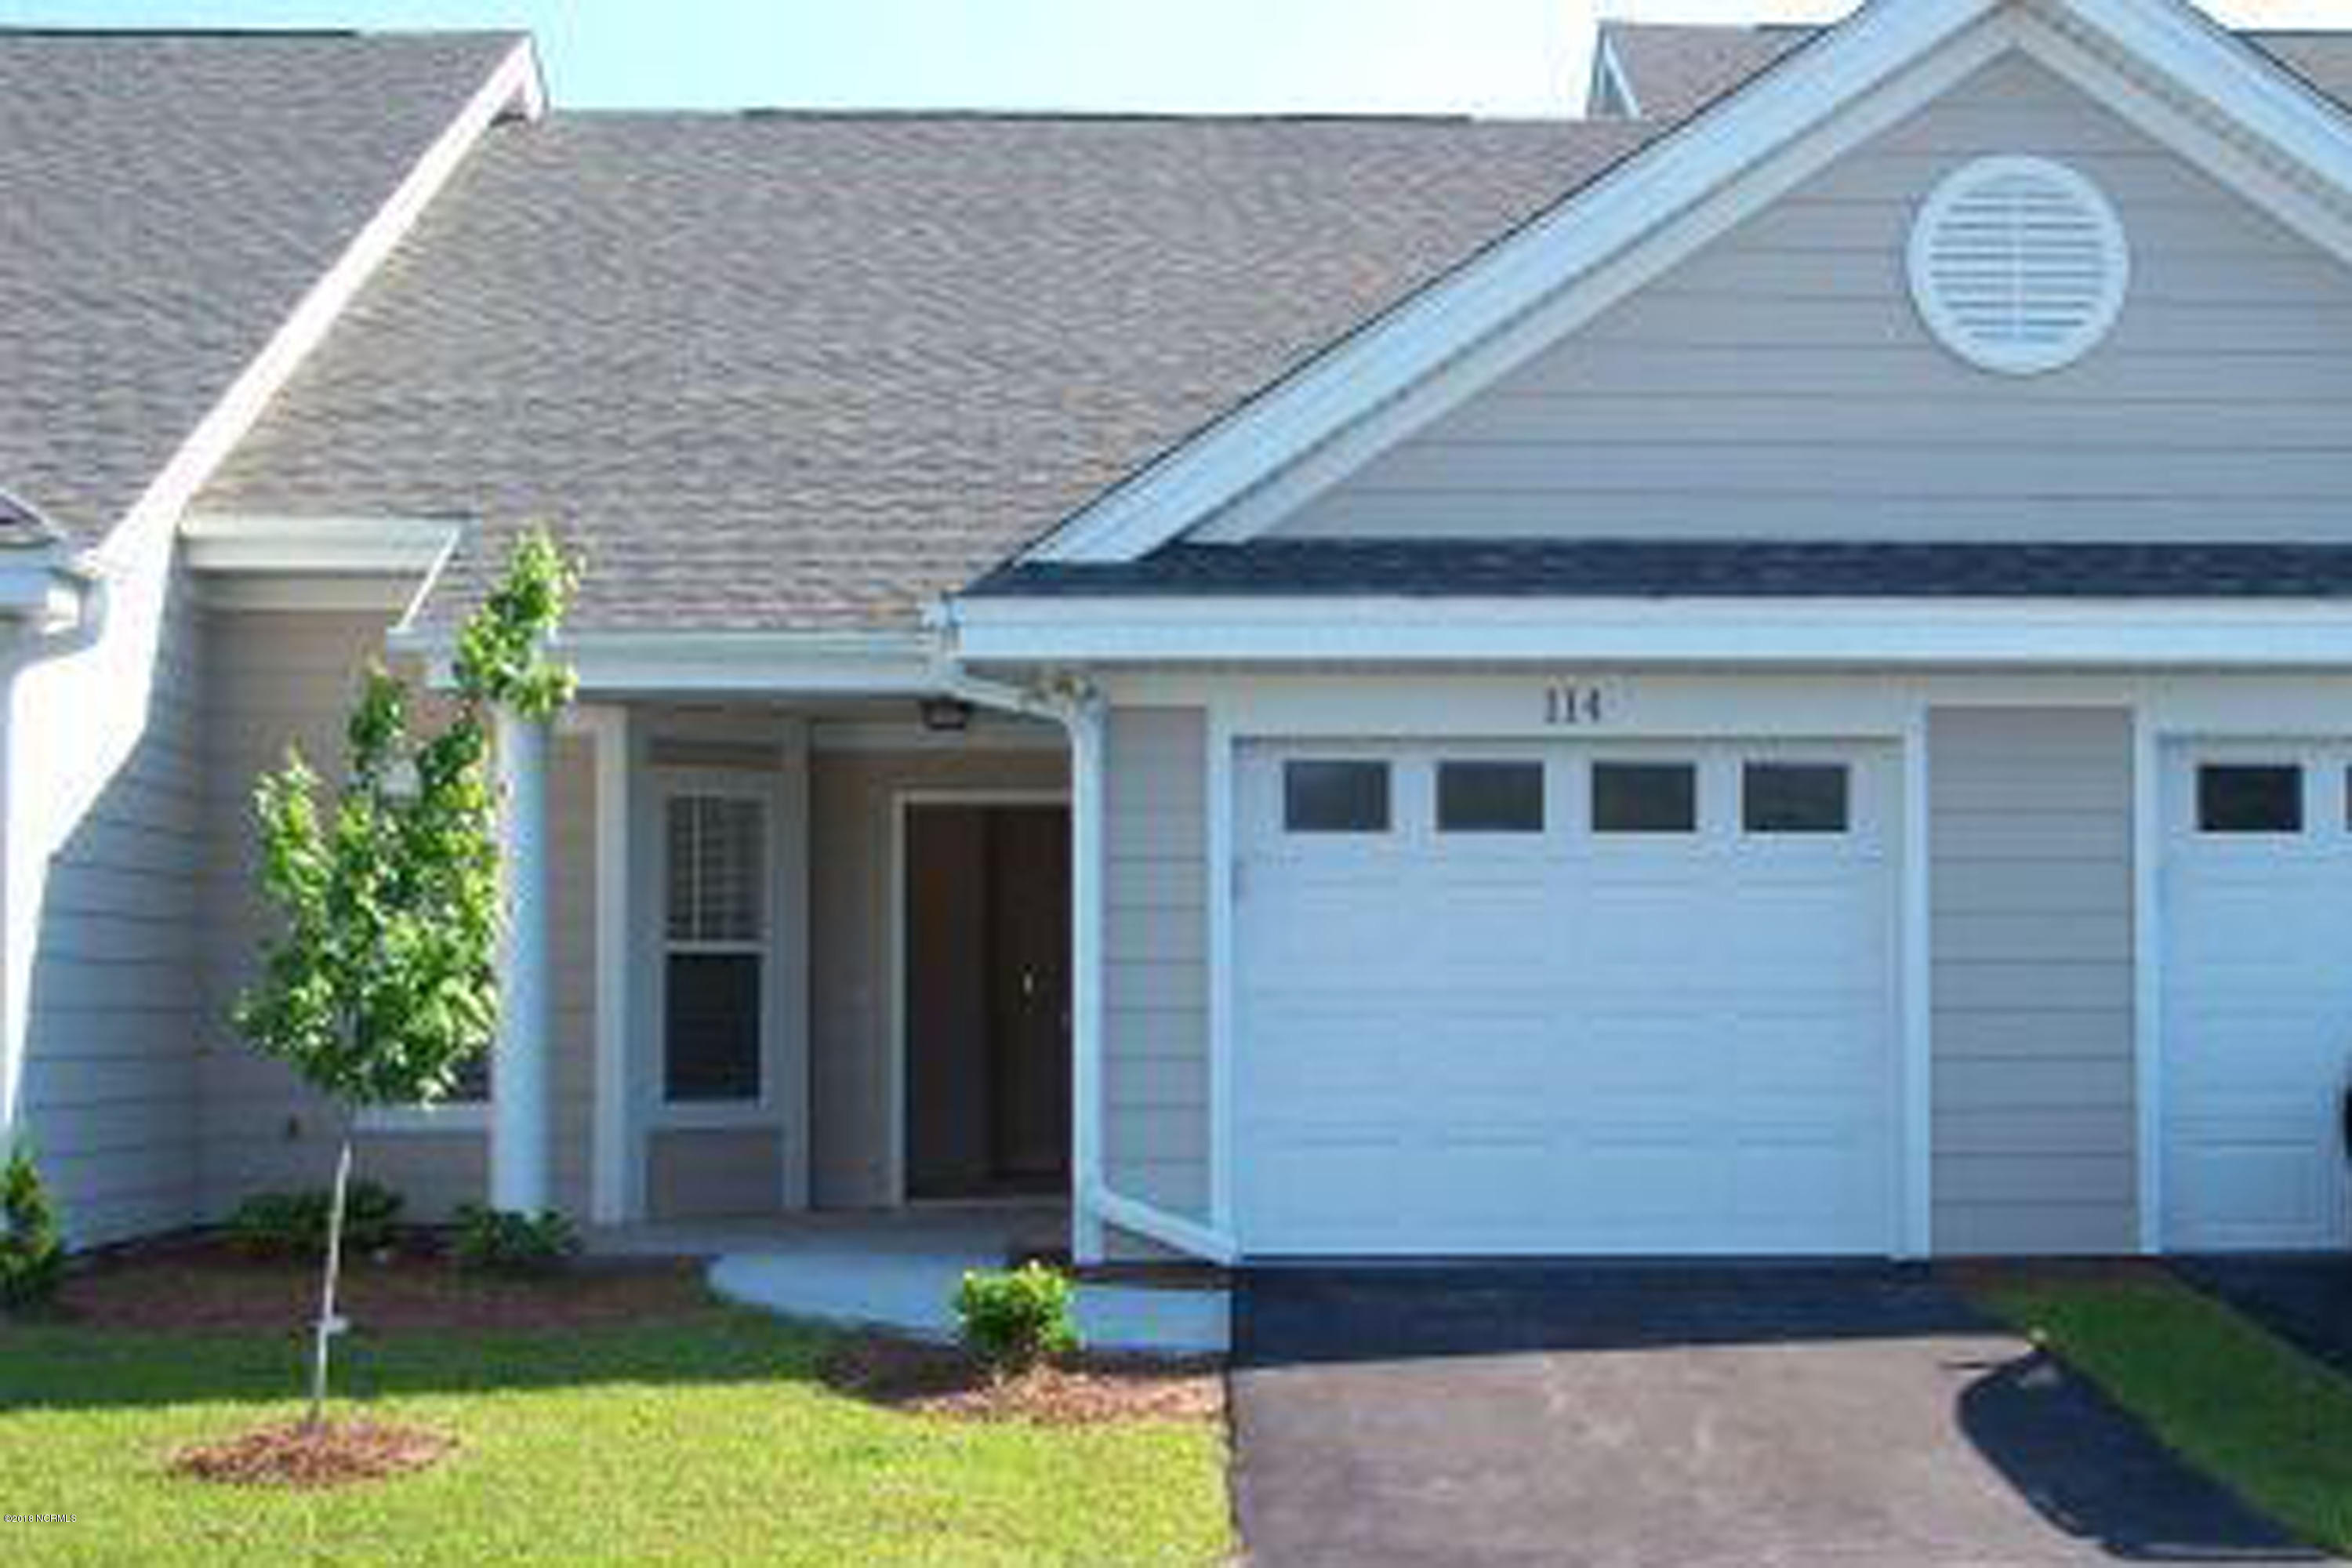 114 Willow Pond Drive, Morehead City, North Carolina 28557, 2 Bedrooms Bedrooms, 5 Rooms Rooms,2 BathroomsBathrooms,Condominium,For sale,Willow Pond,100231470